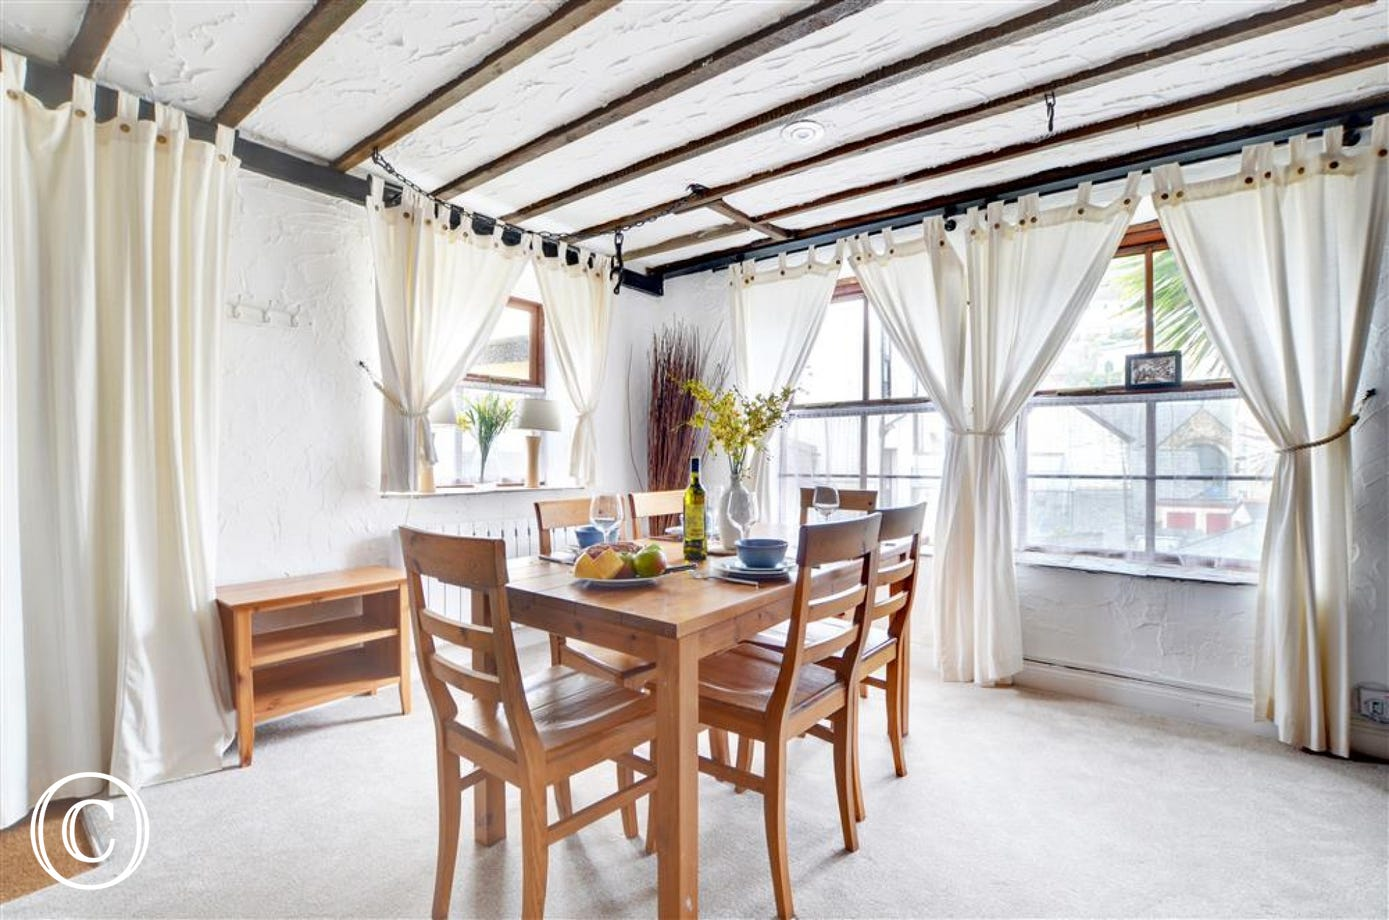 Lovely dining area, ideal for leisurely meals overlooking the rooftops of Lynton.